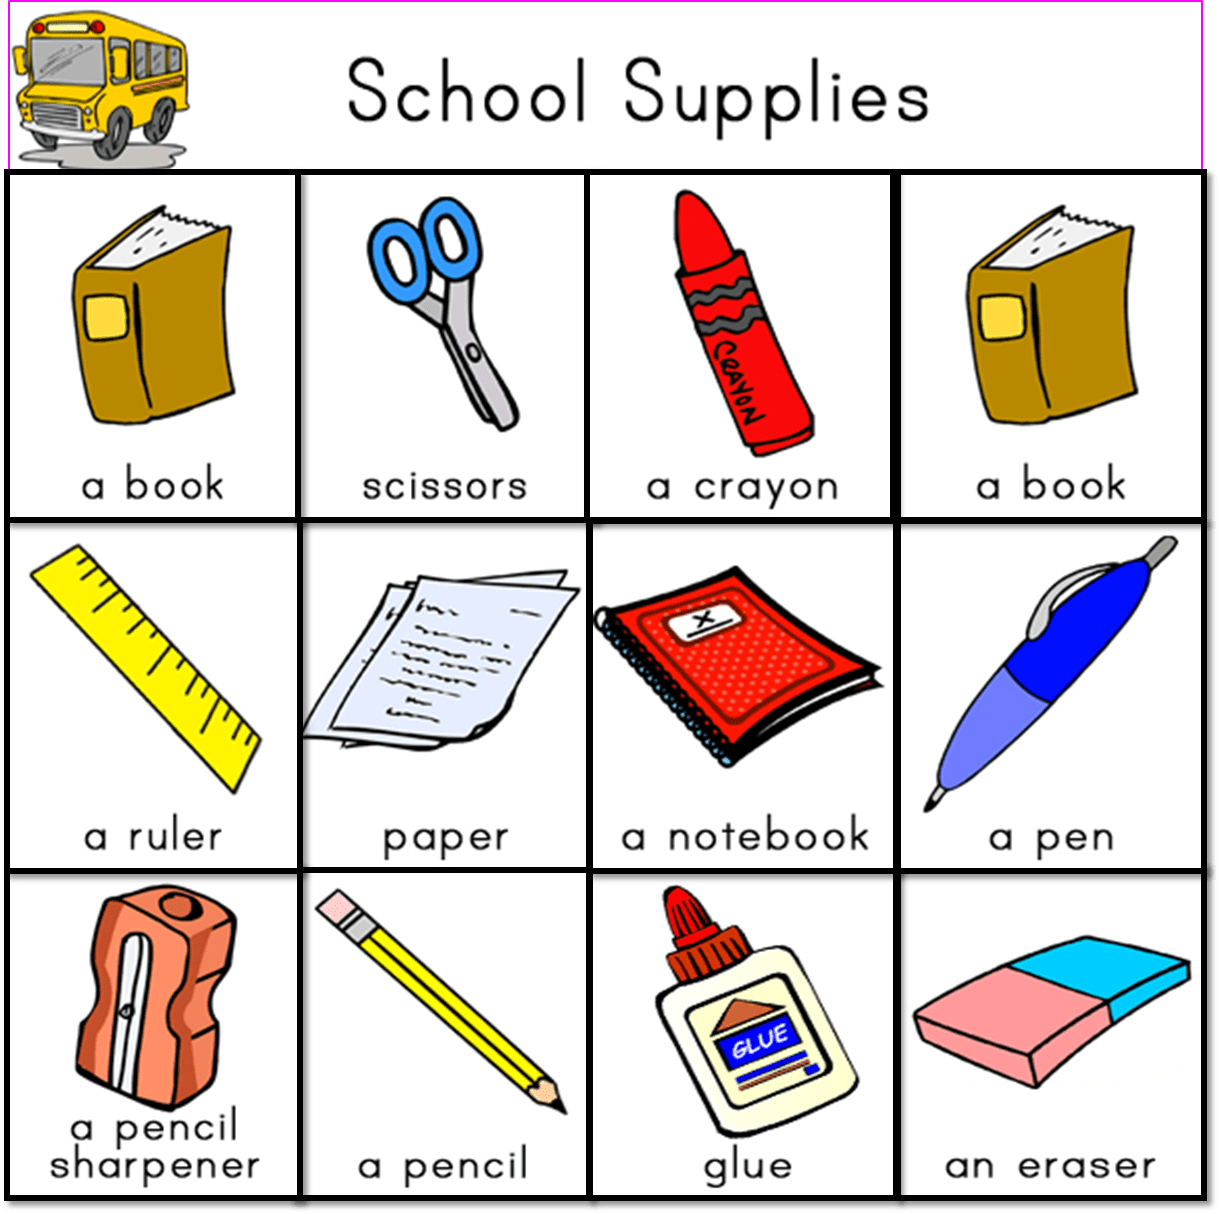 School Supplies Vocabulary Worksheet